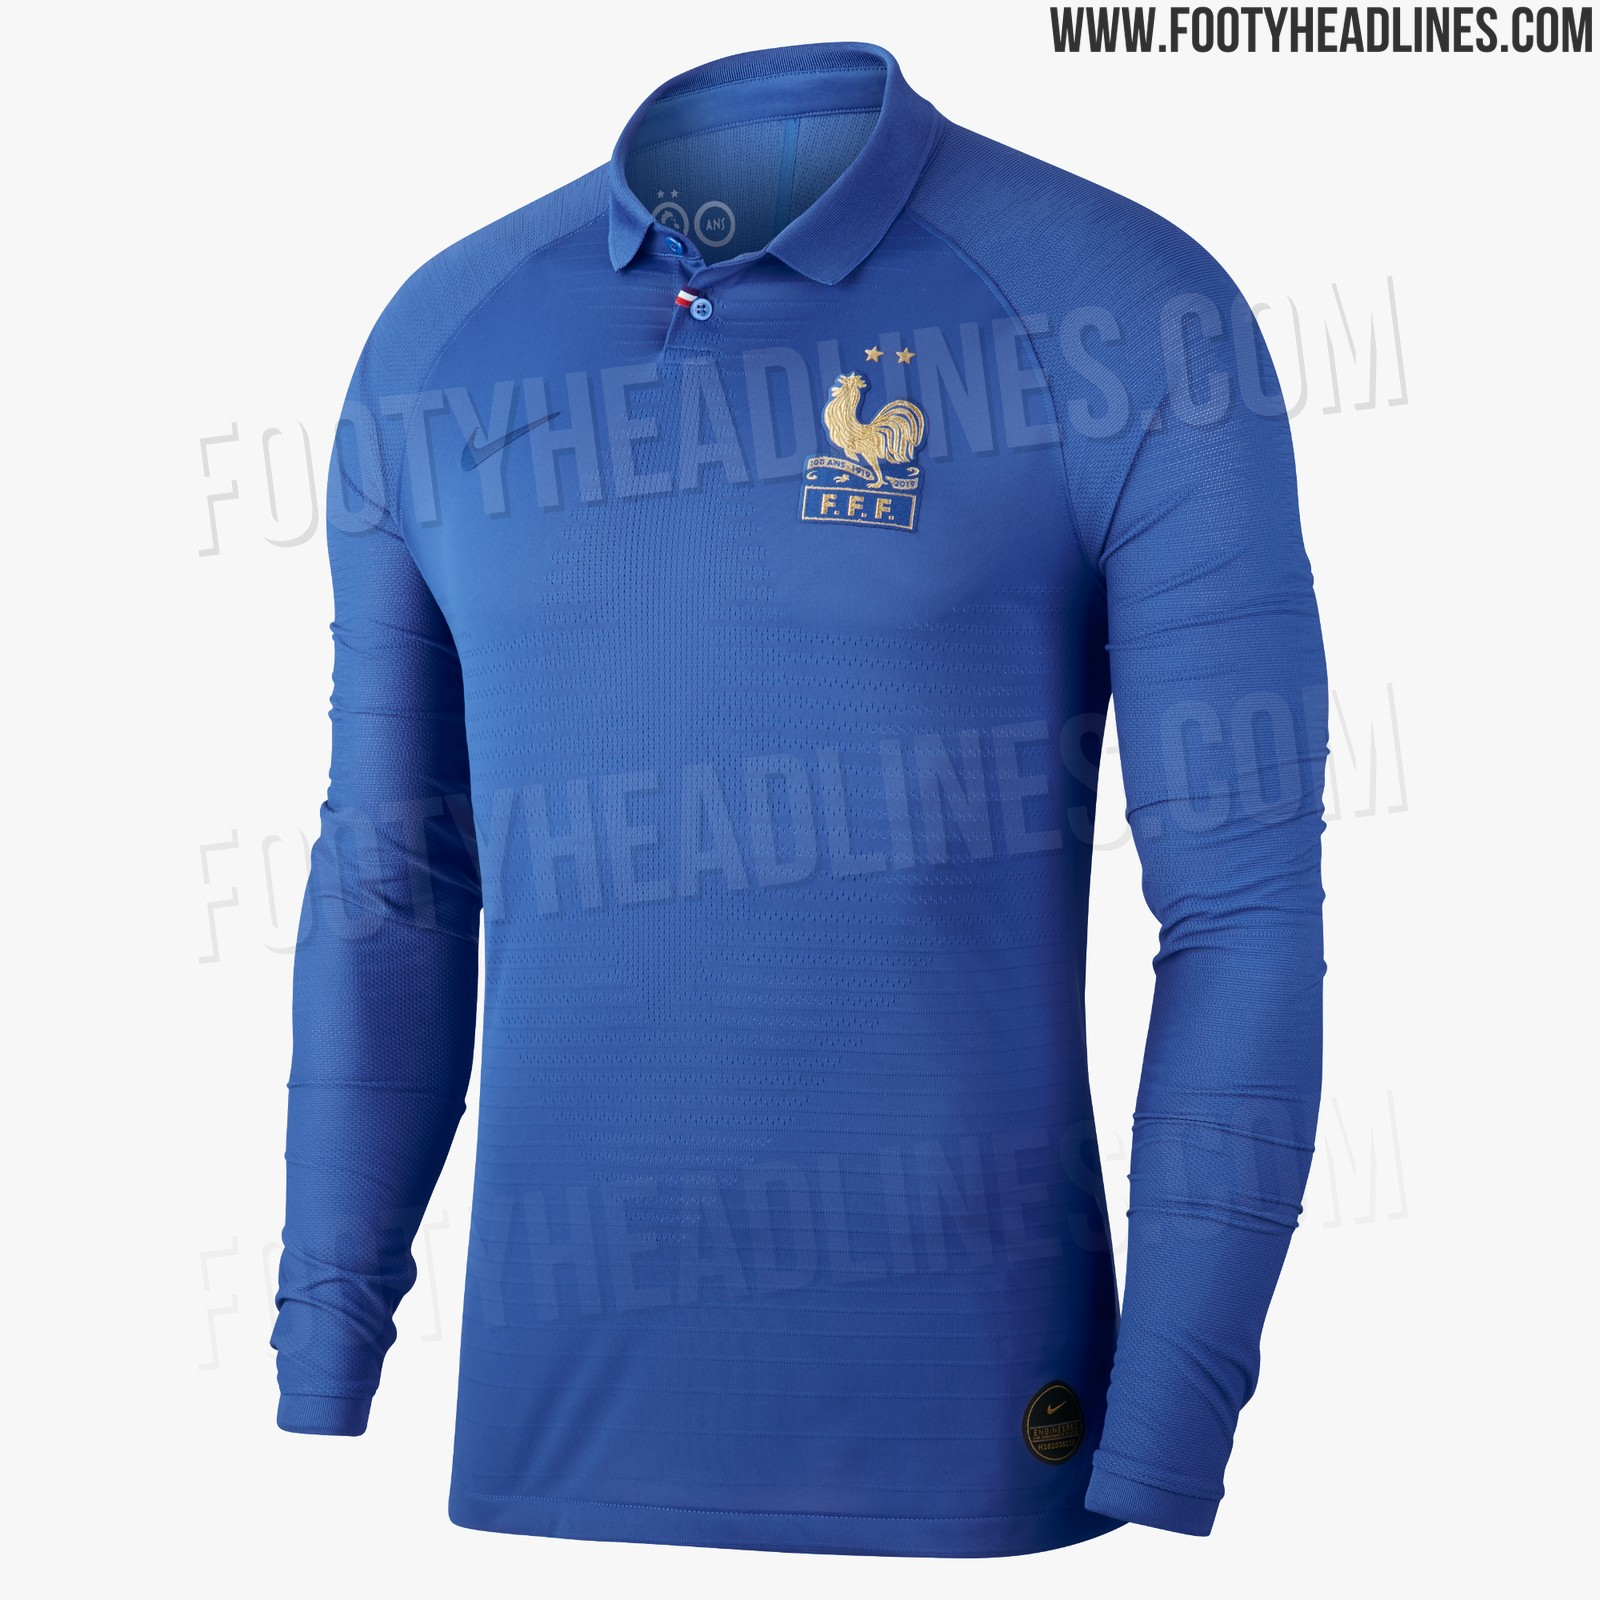 buy online 29108 f8c48 Full France Home Kit History | Adidas or Nike - Whose France ...